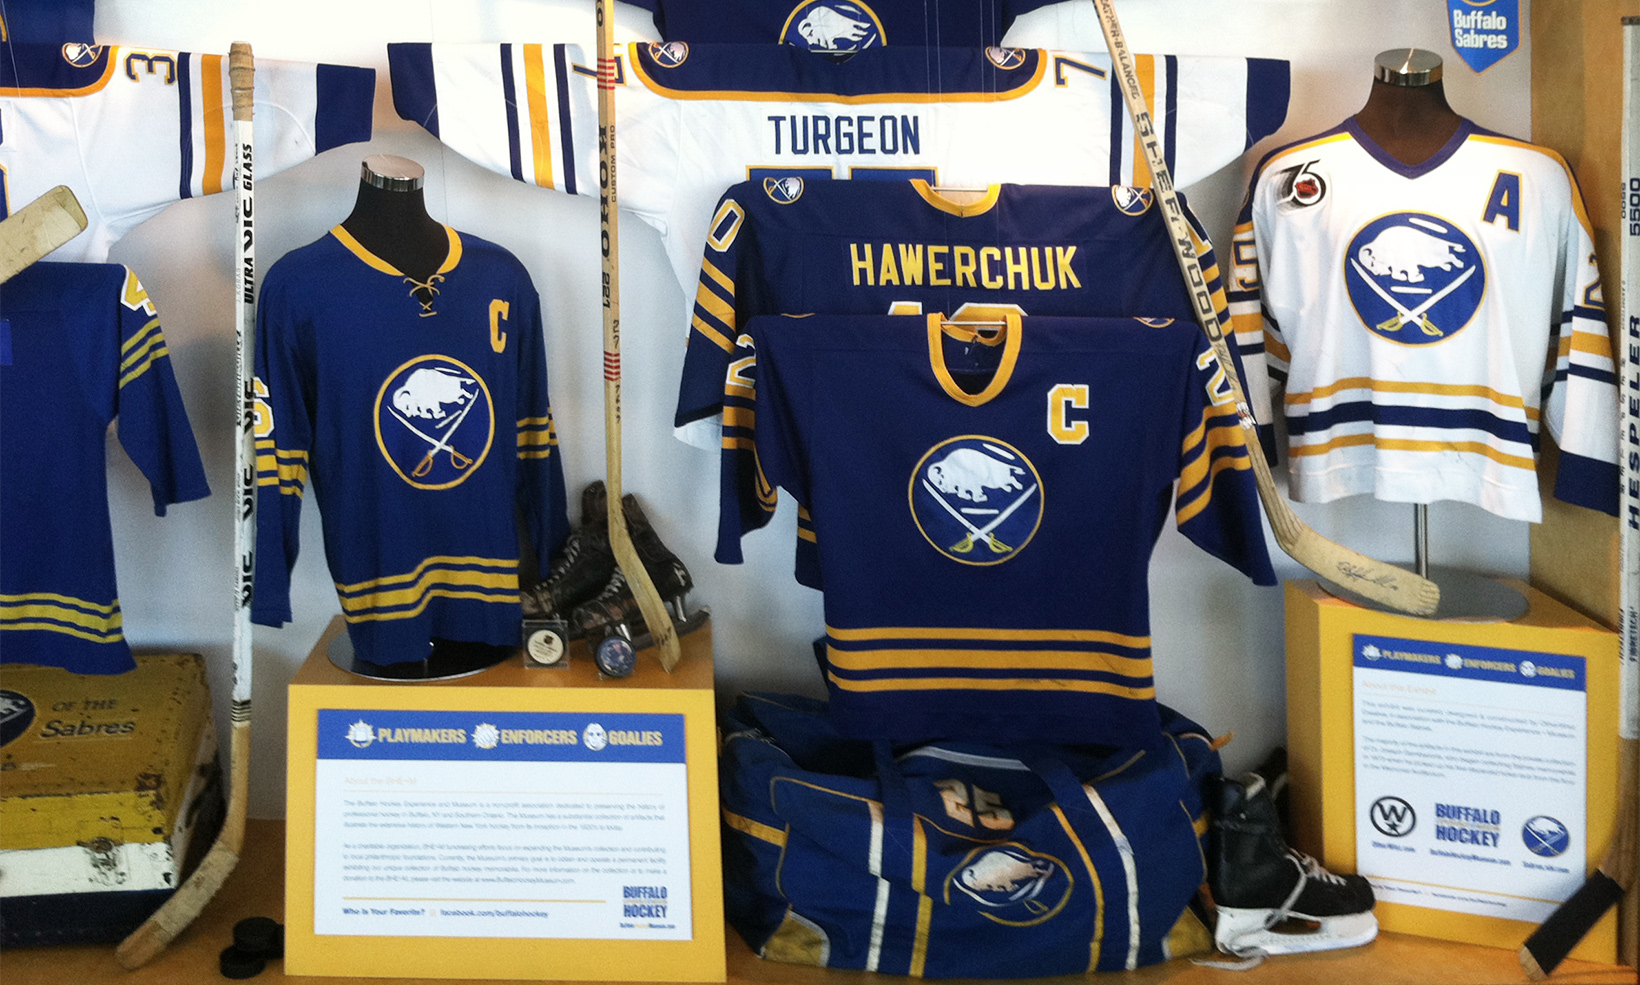 The Playmakers, Enforcers, & Goalie's exhibit tells a narrative through the arrangement of Sabres' hockey jerseys and sticks